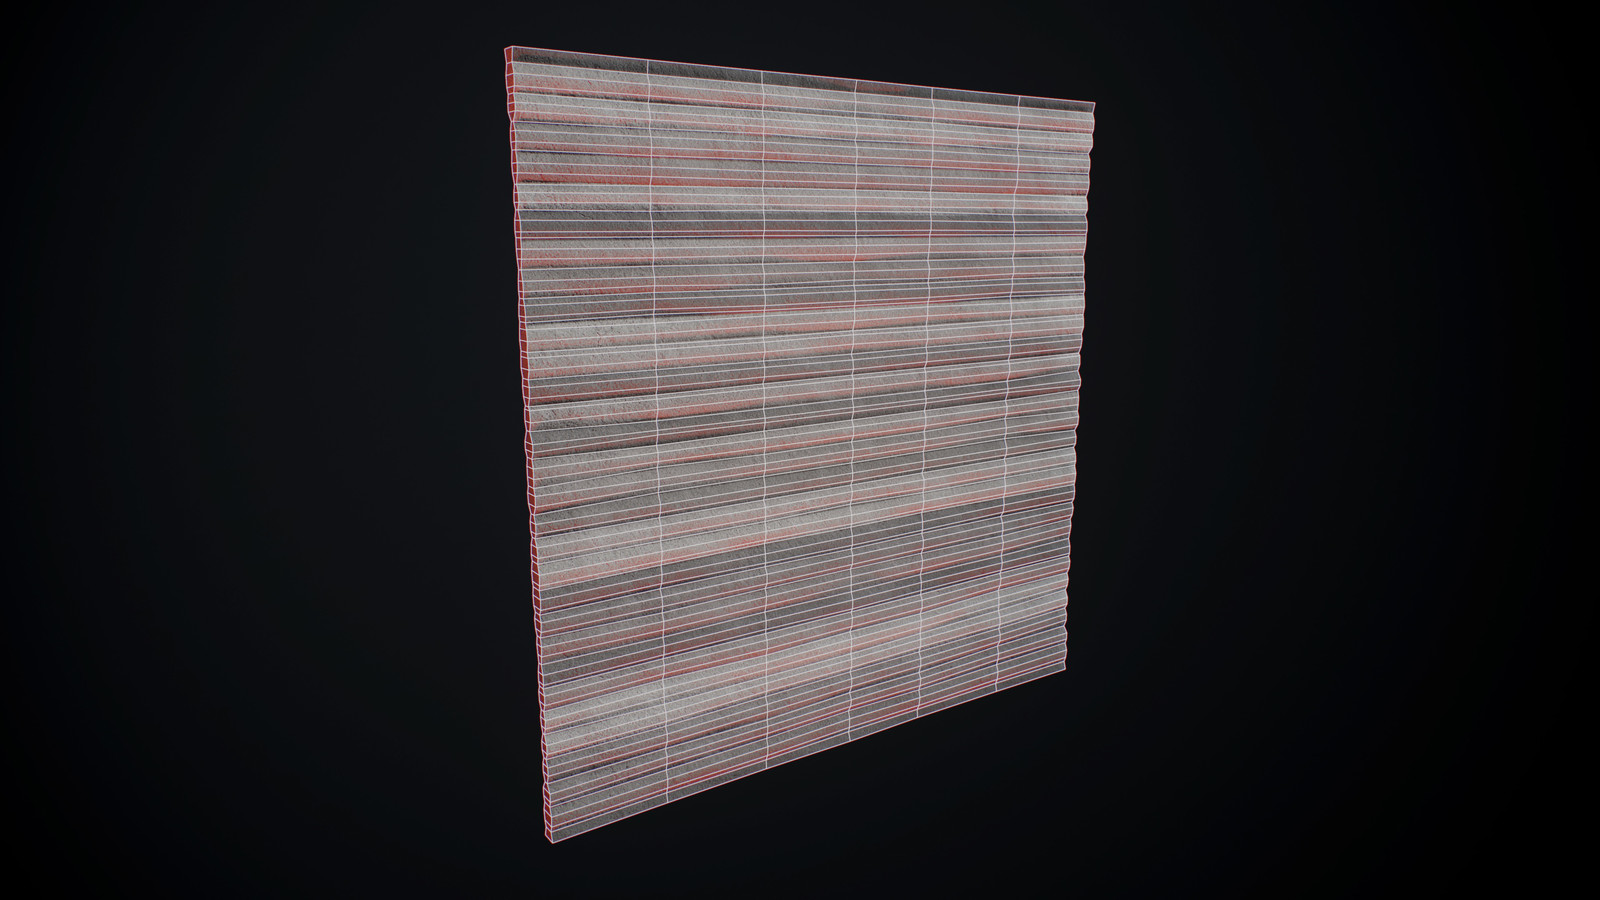 Wall Wireframe